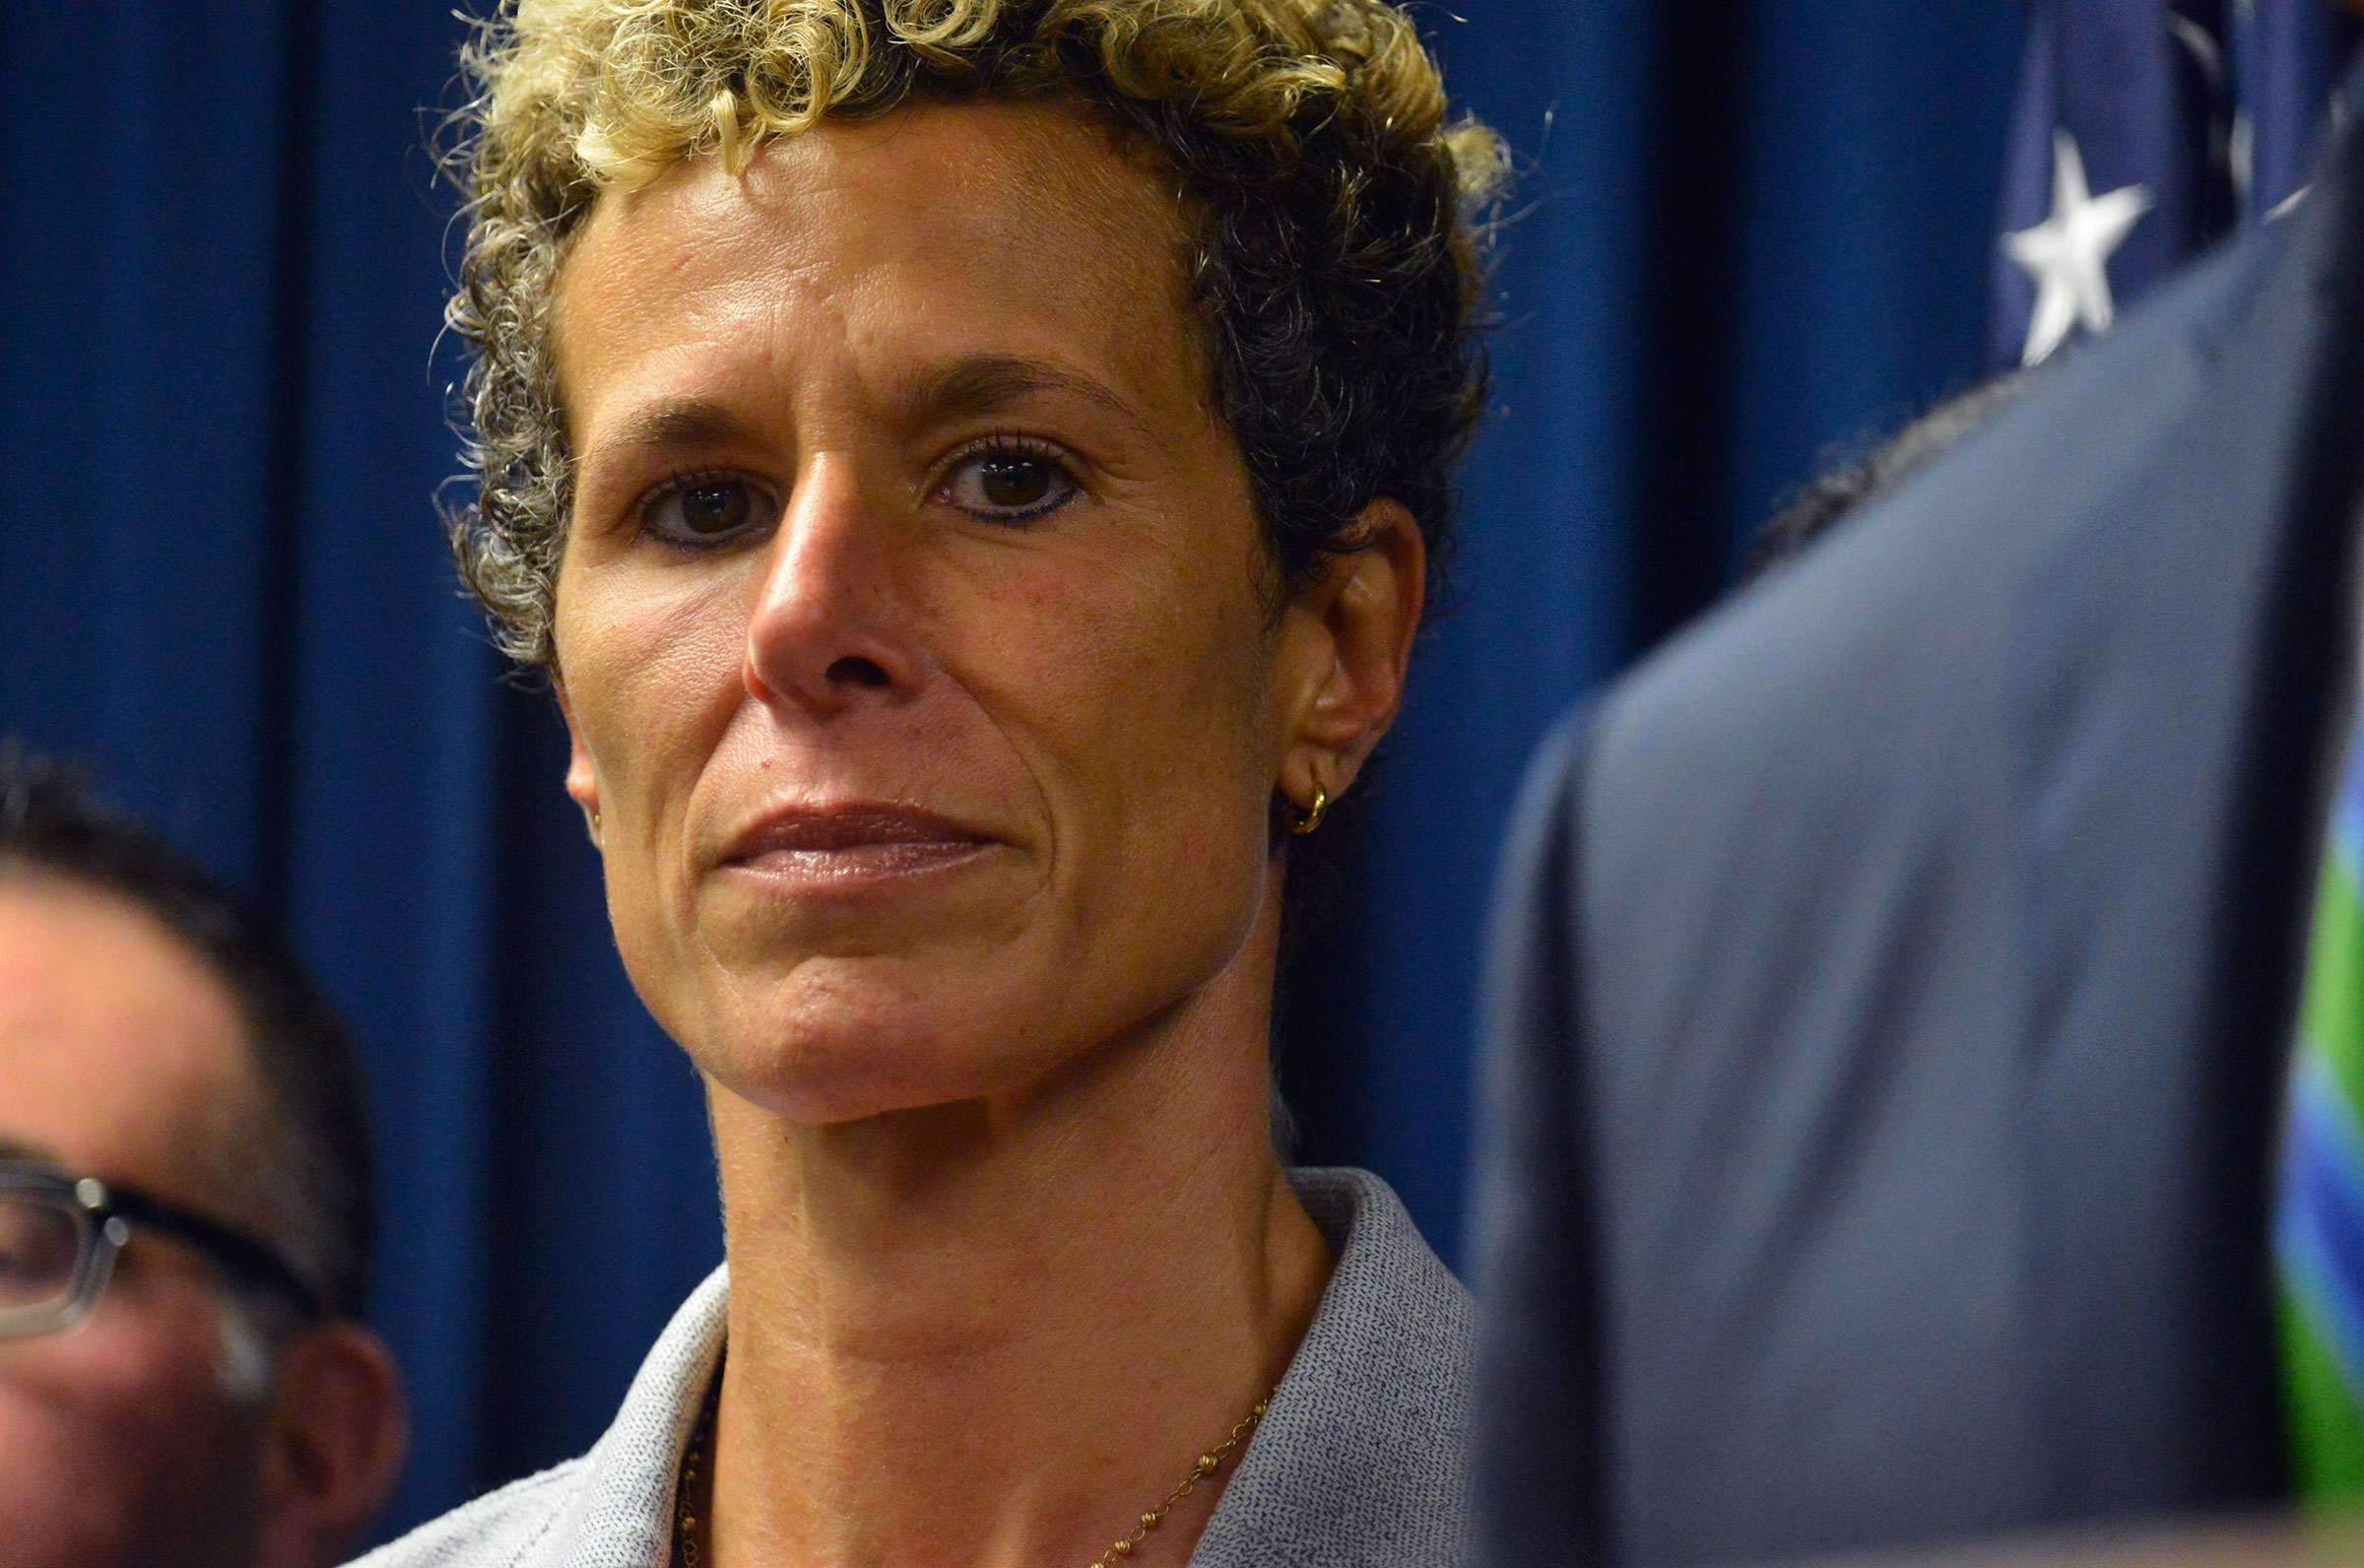 Andrea Constand attends a press conference in Norristown, Pennsylvania, in 2018.